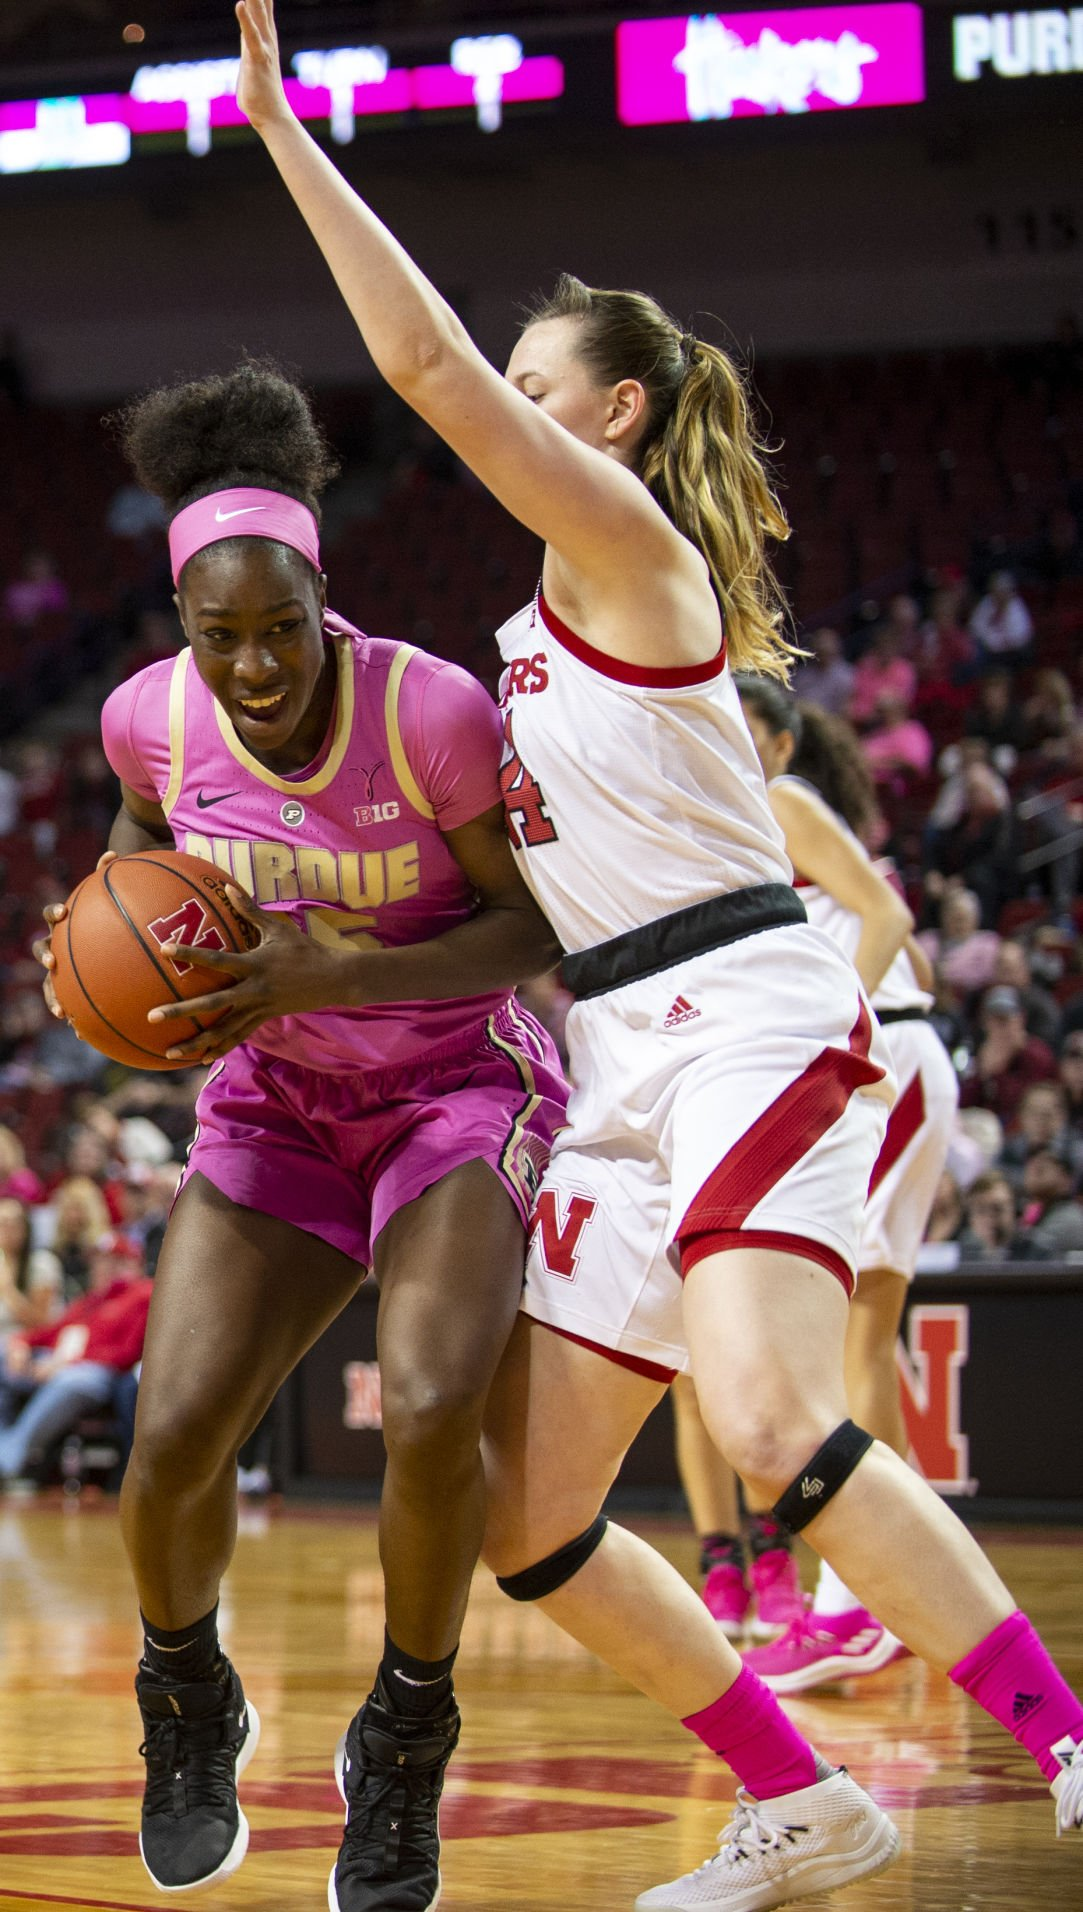 Nebraska Cornhuskers vs. Purdue Boilermakers Womens 2.10